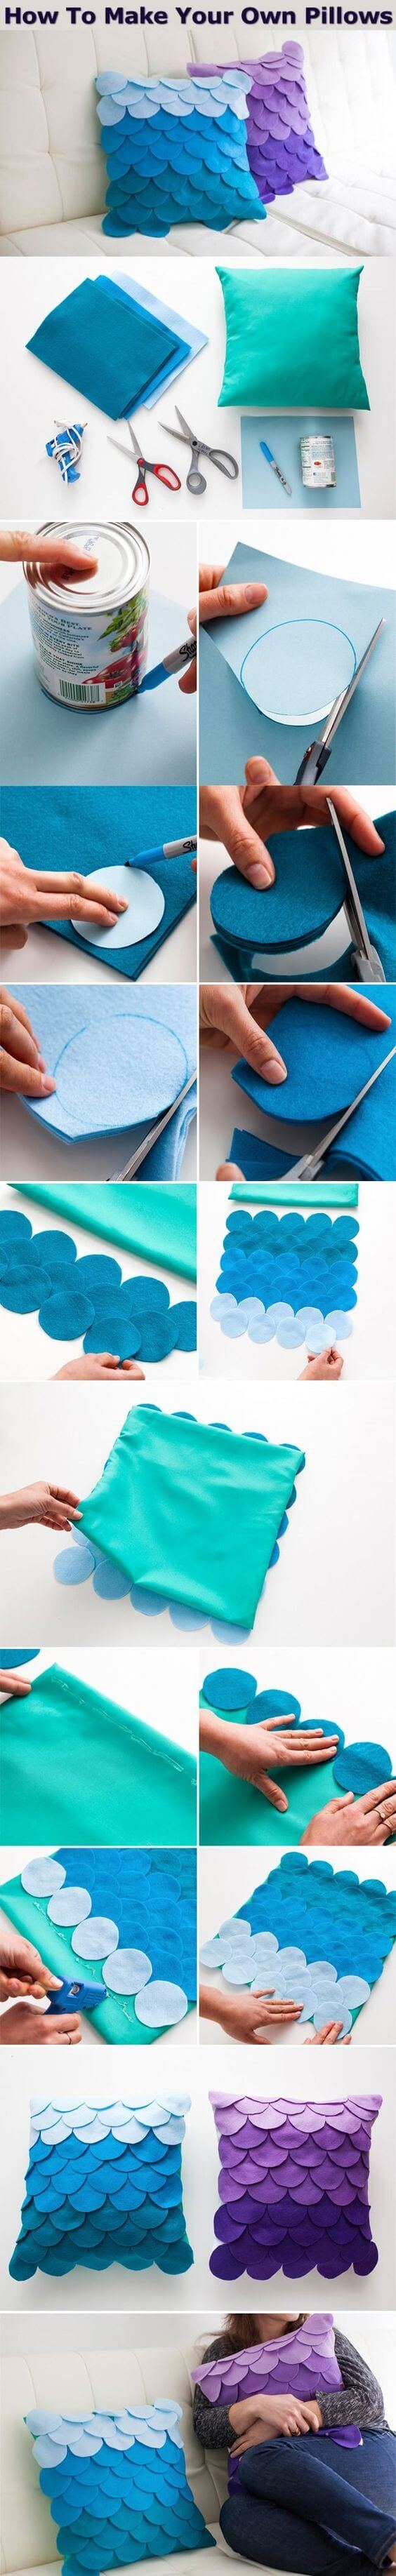 Diy pillows cover design from felt Stylish DIY Pillow Craft Ideas - Step by step